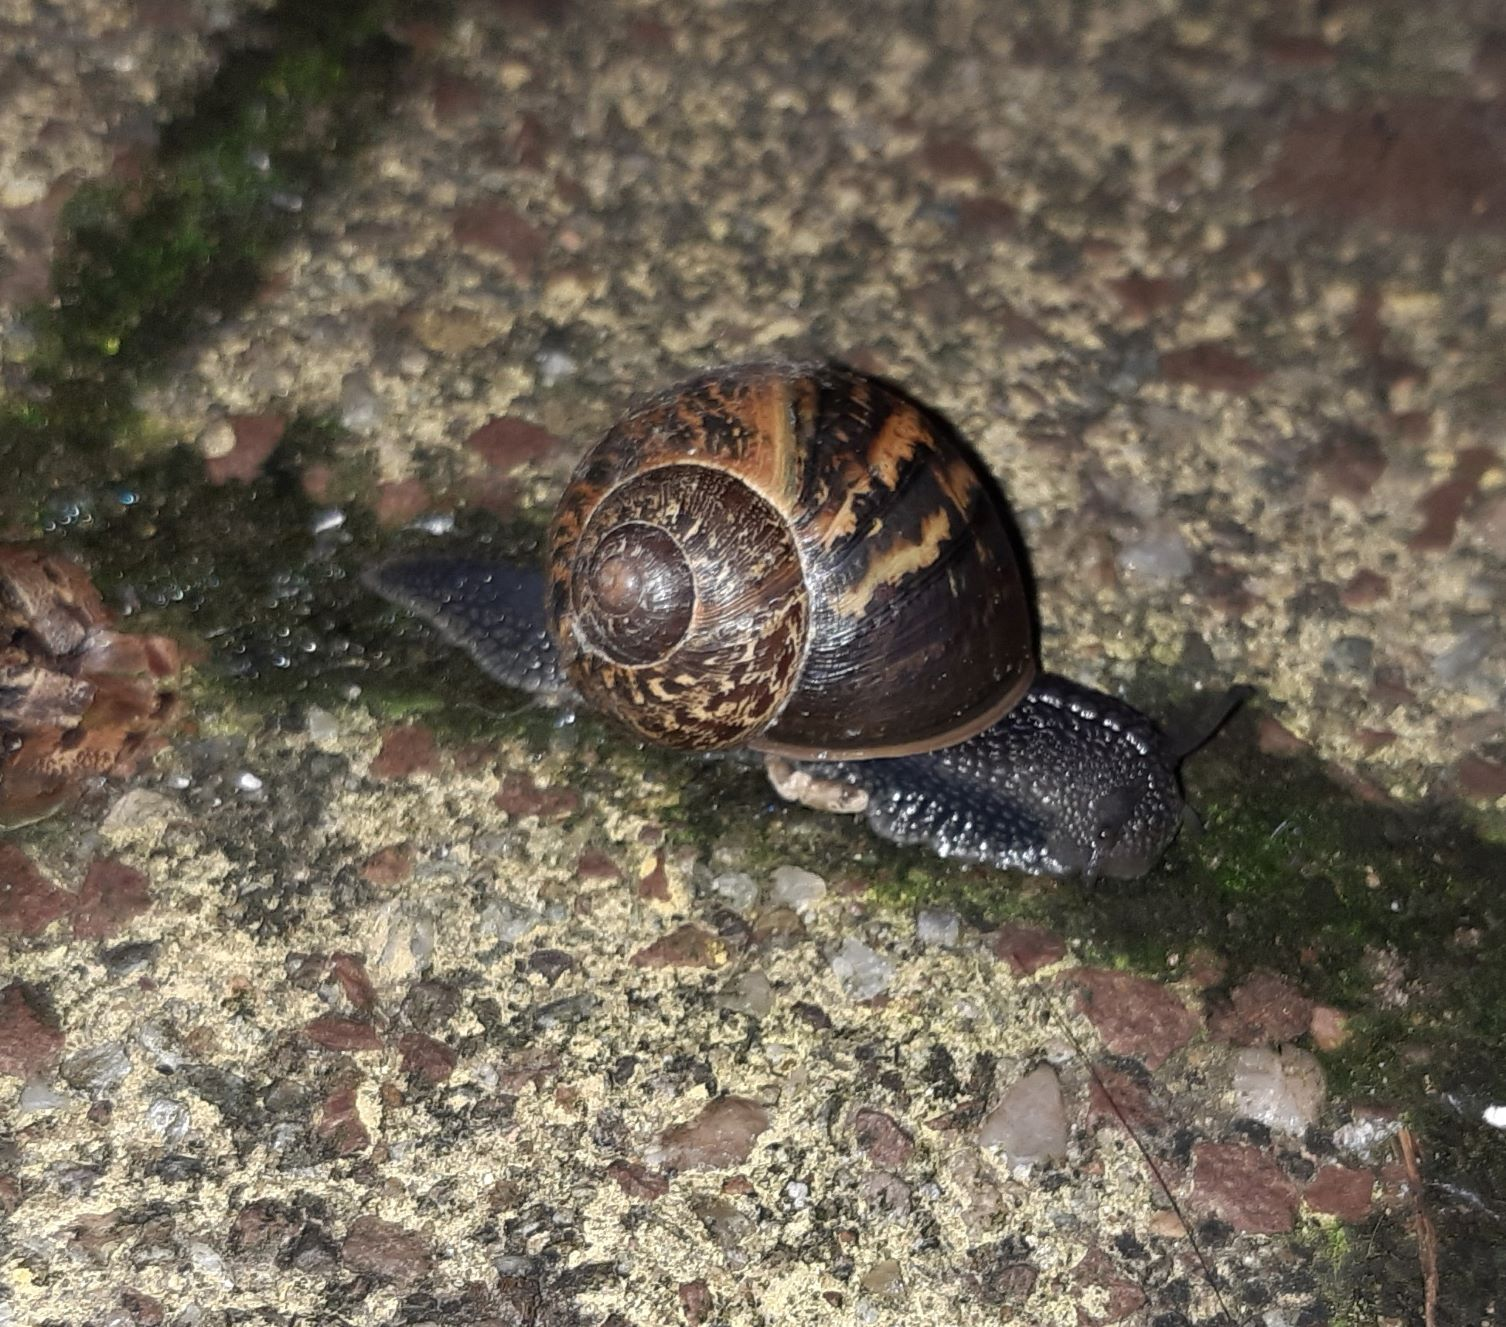 A snail on the brick walkway, moving along a line of moss between bricks. Its shell has the same pretty brown and tan pattern, and its pebbly dark gray skin has a white dotted line down the back of its neck starting between its eyes. The eye stalks are less extended than the others, but still looking around.